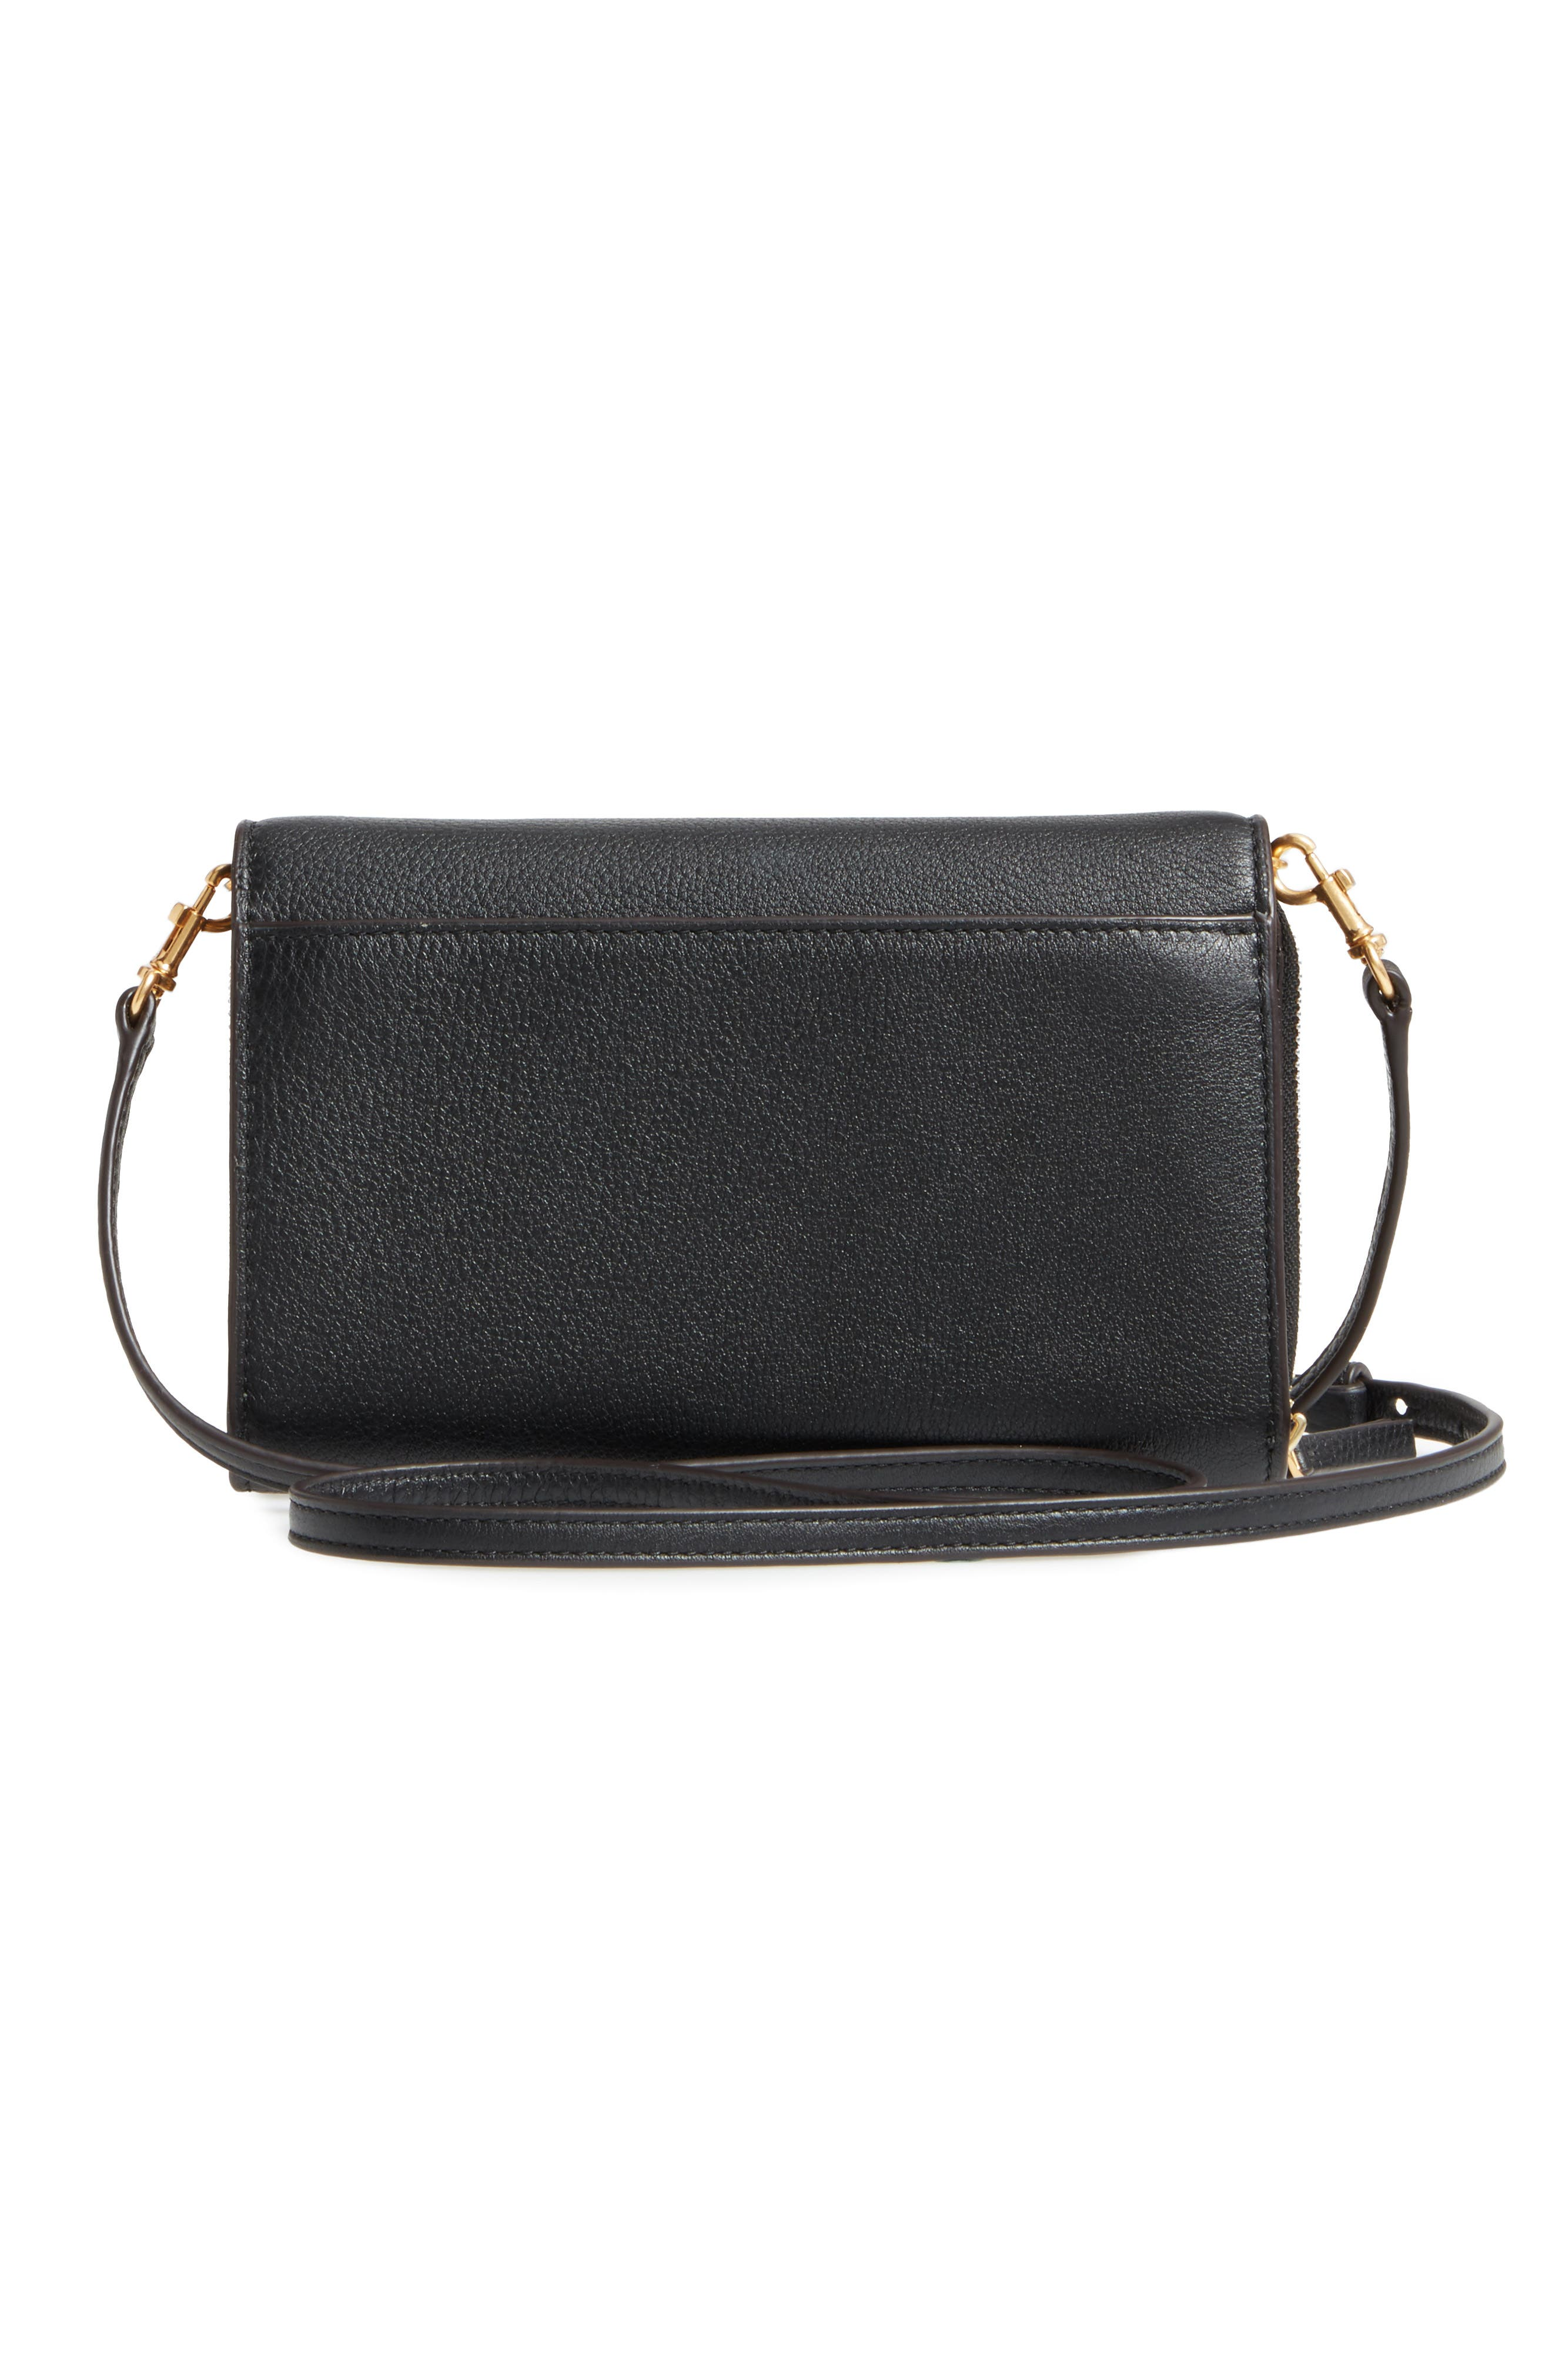 TORY BURCH, McGraw Leather Crossbody Wallet, Alternate thumbnail 3, color, BLACK